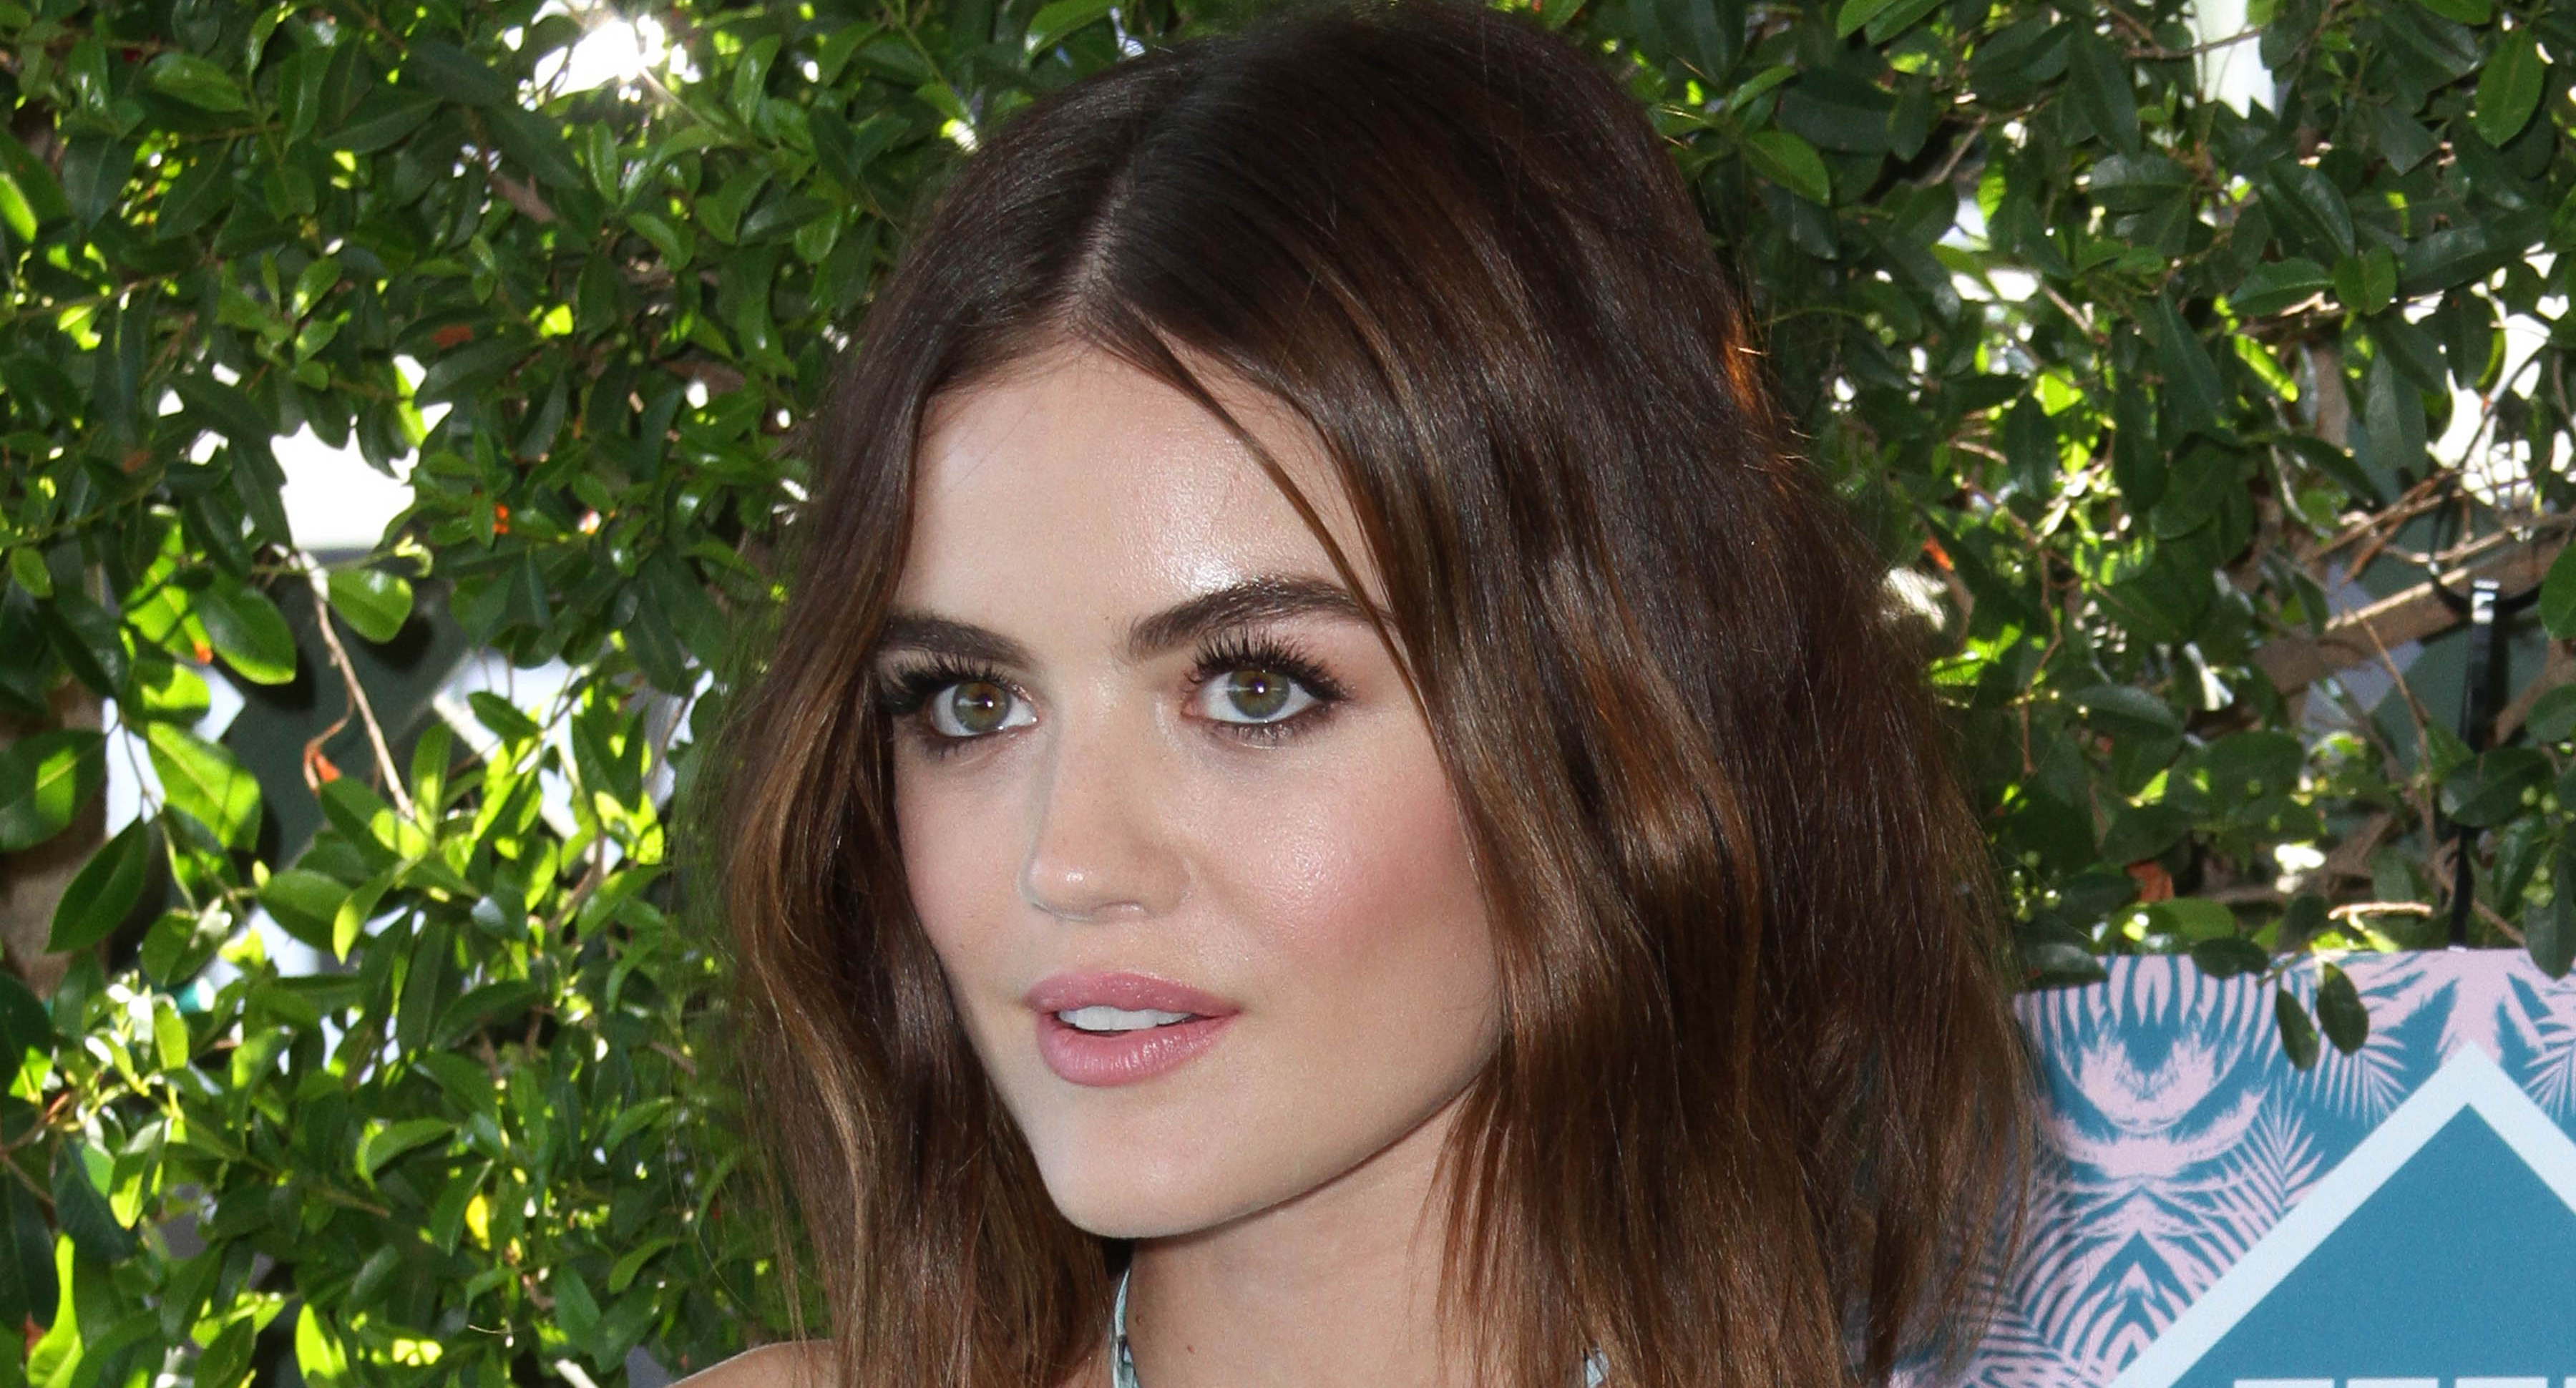 #WCW: 25 Reasons We Absolutely Adore Lucy Hale